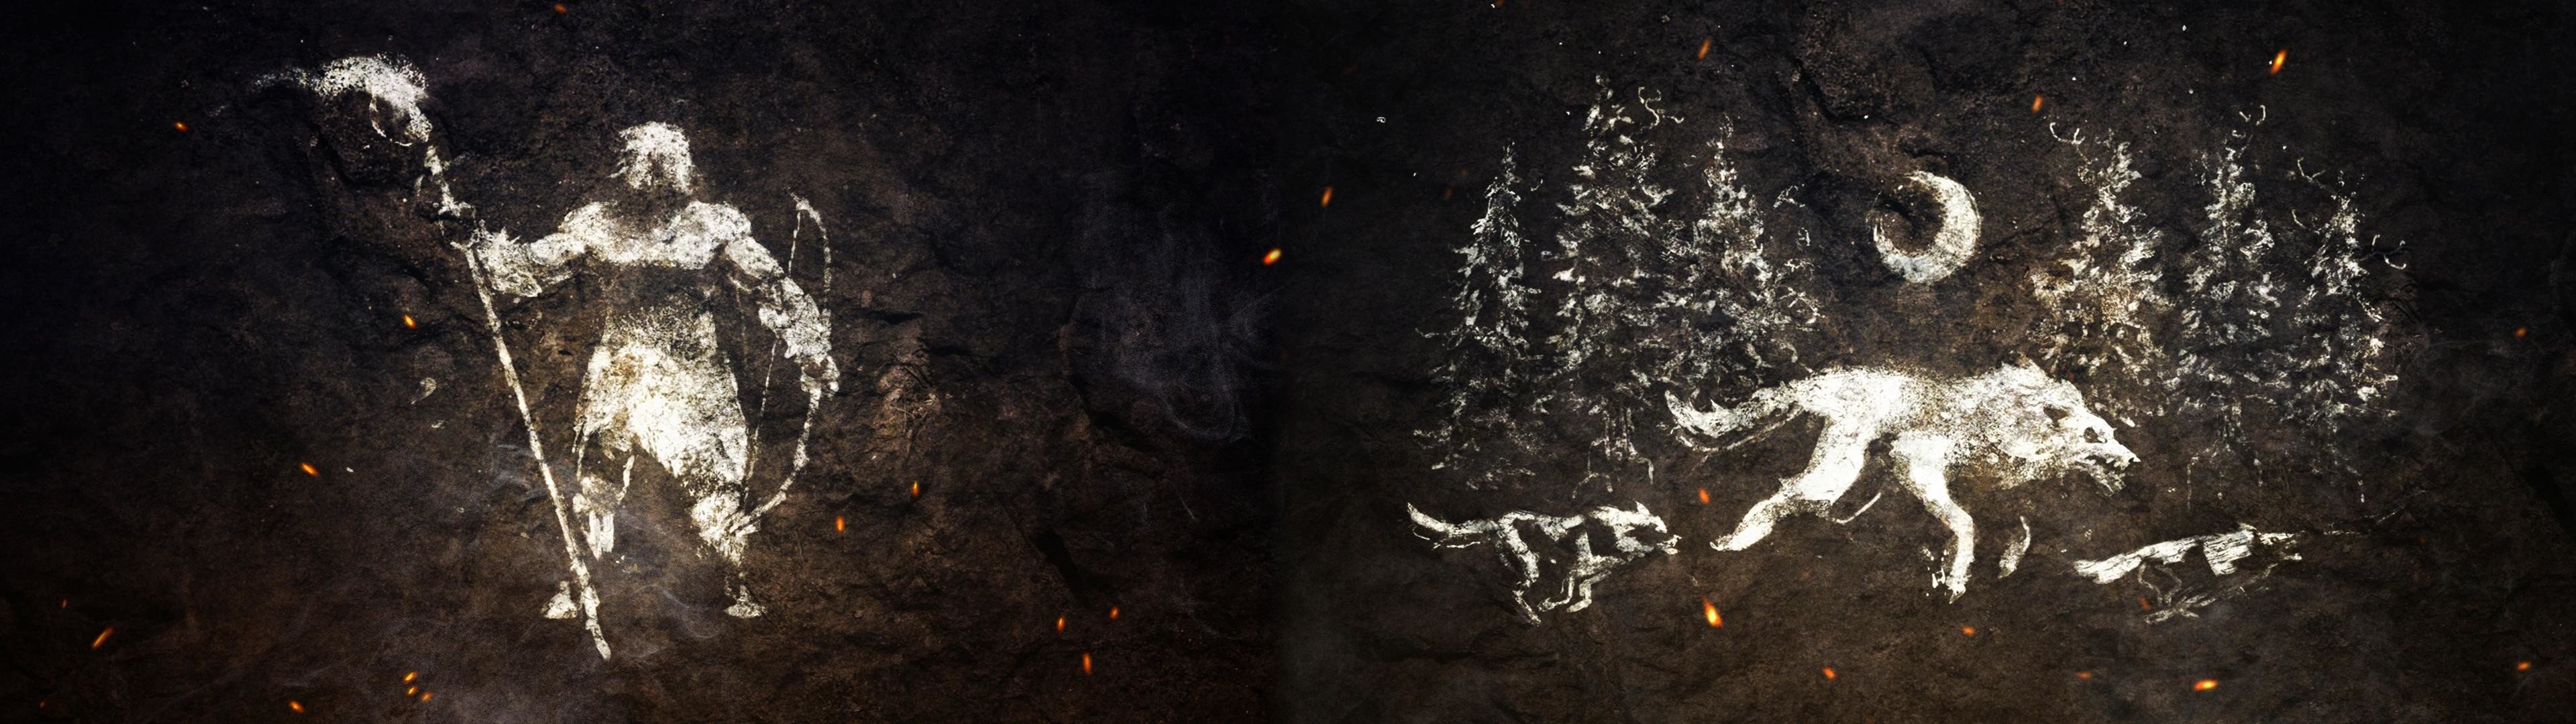 3840x1080 Made a FarCry: Primal Dual Monitor Wallpaper [] ...